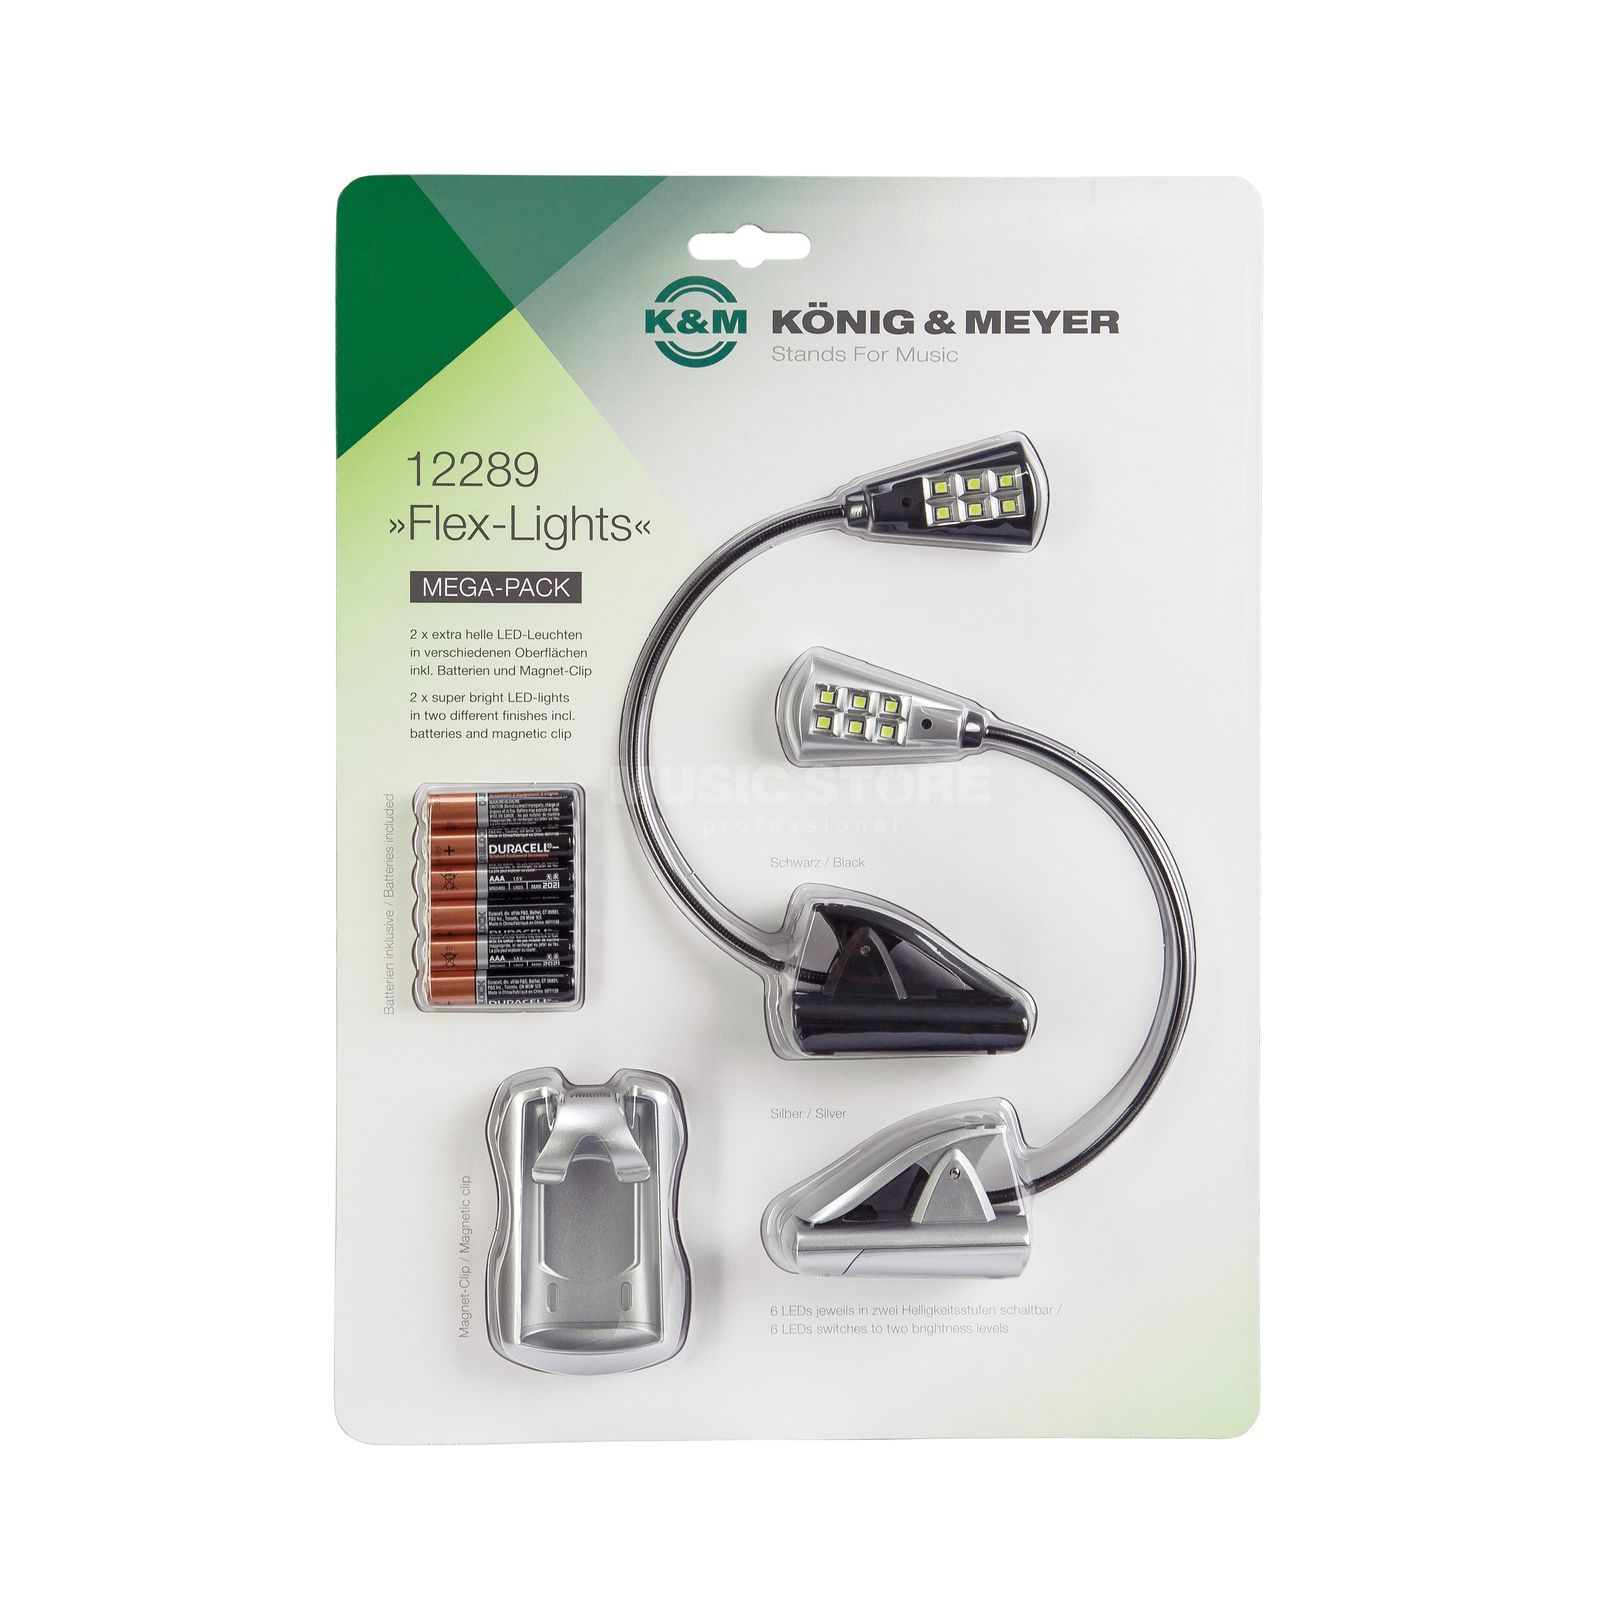 König & Meyer 12289 Notenpultleuchten Flex Lights Mega-Pack Produktbild